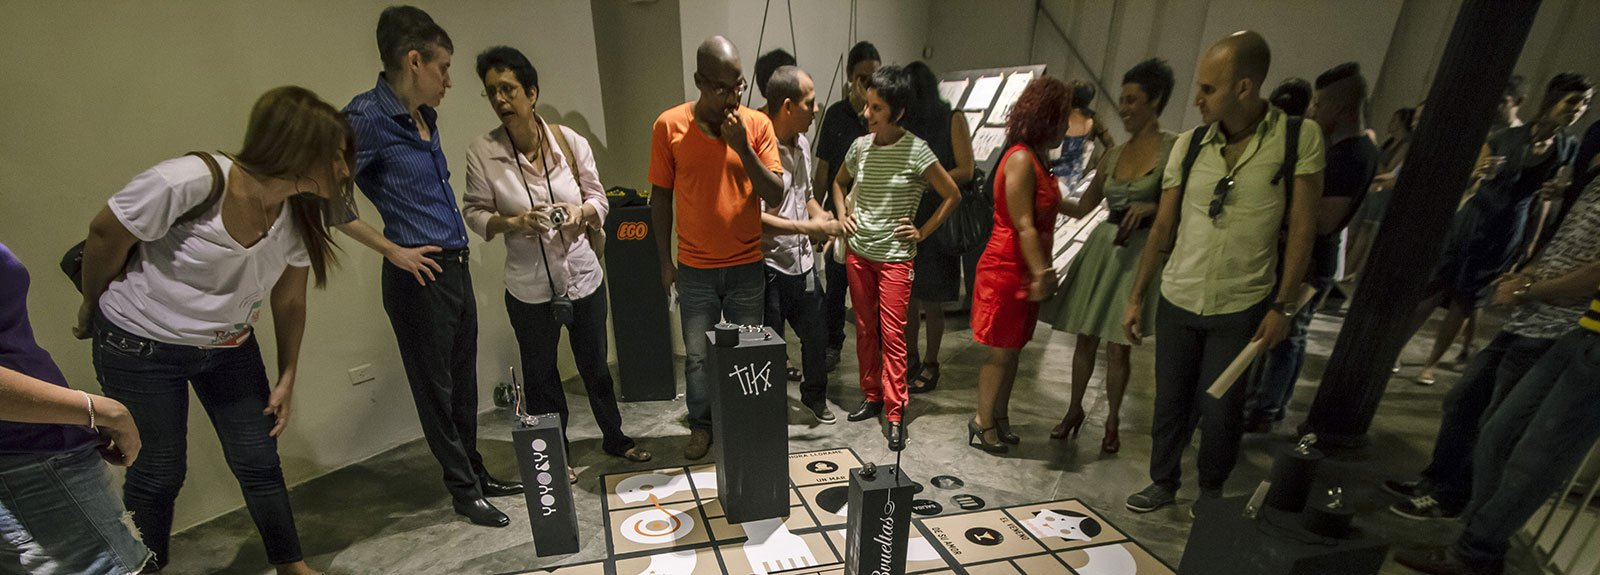 People on an art exhibition on Factia Habana Gallery, papers on the floor with Blak details